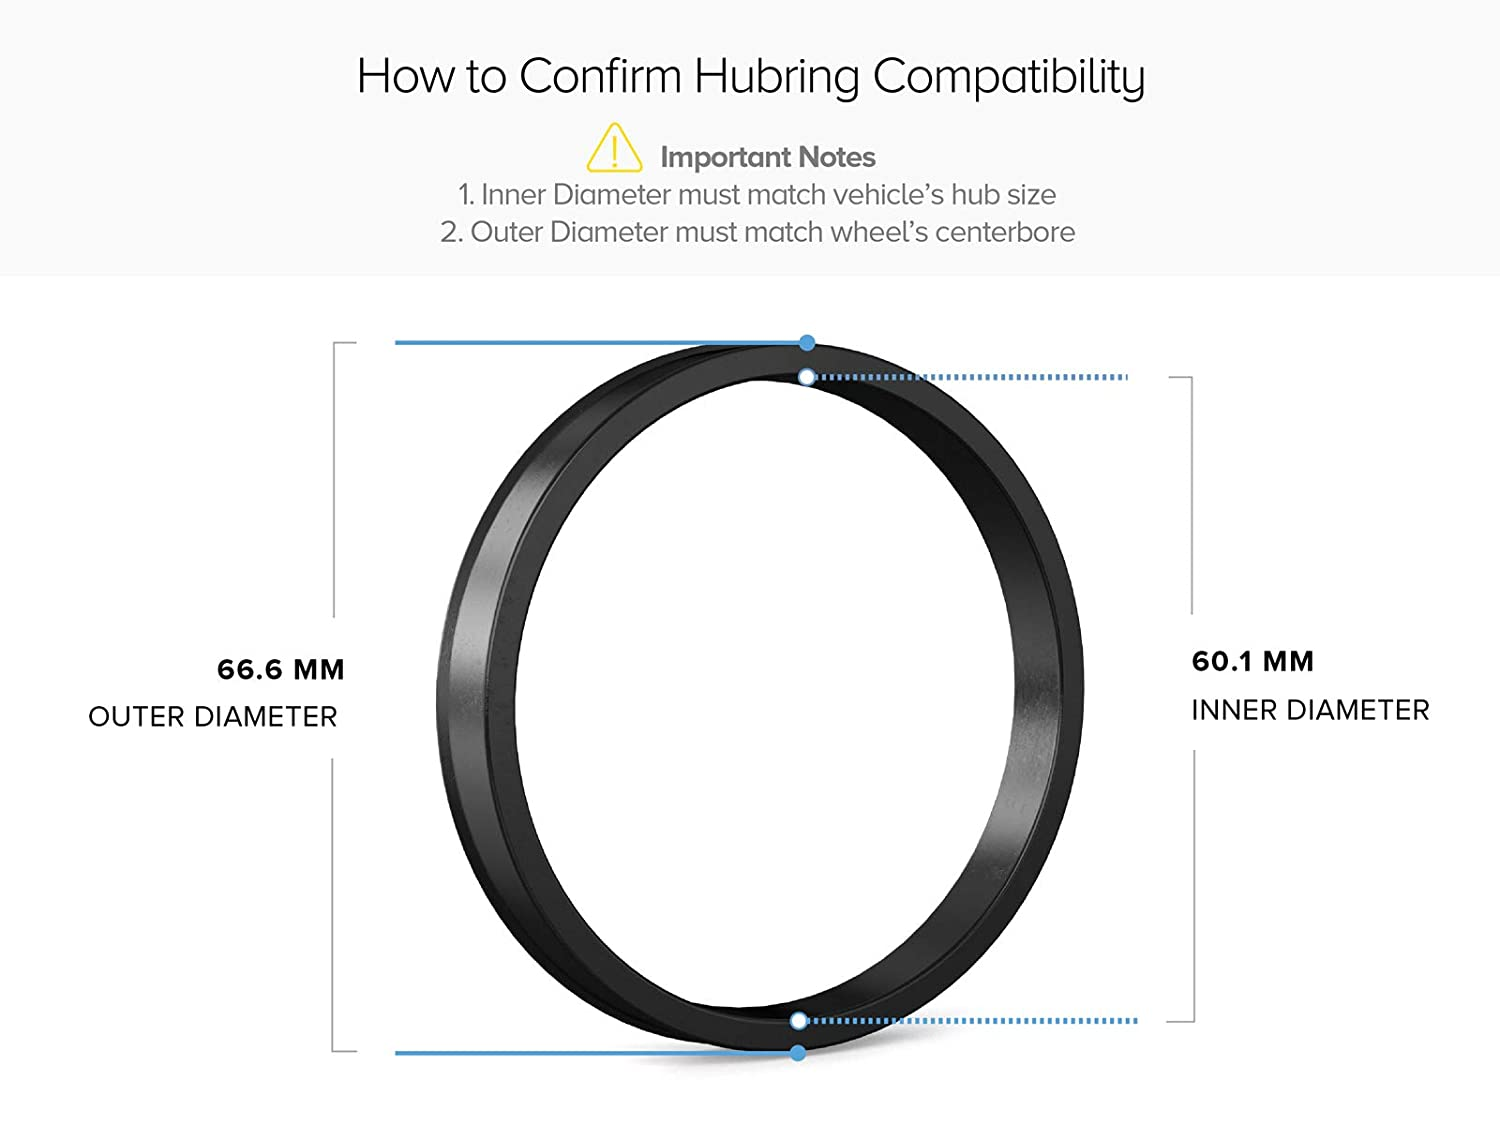 Hubcentric Rings - 60.1mm ID to 66.1mm OD Only Works on 60.1mm Vehicle Hubs /& Pack of 4 Black Poly Carbon Plastic Hubrings Hub 66.1mm Wheel Centerbore - for many Toyota /& Lexus